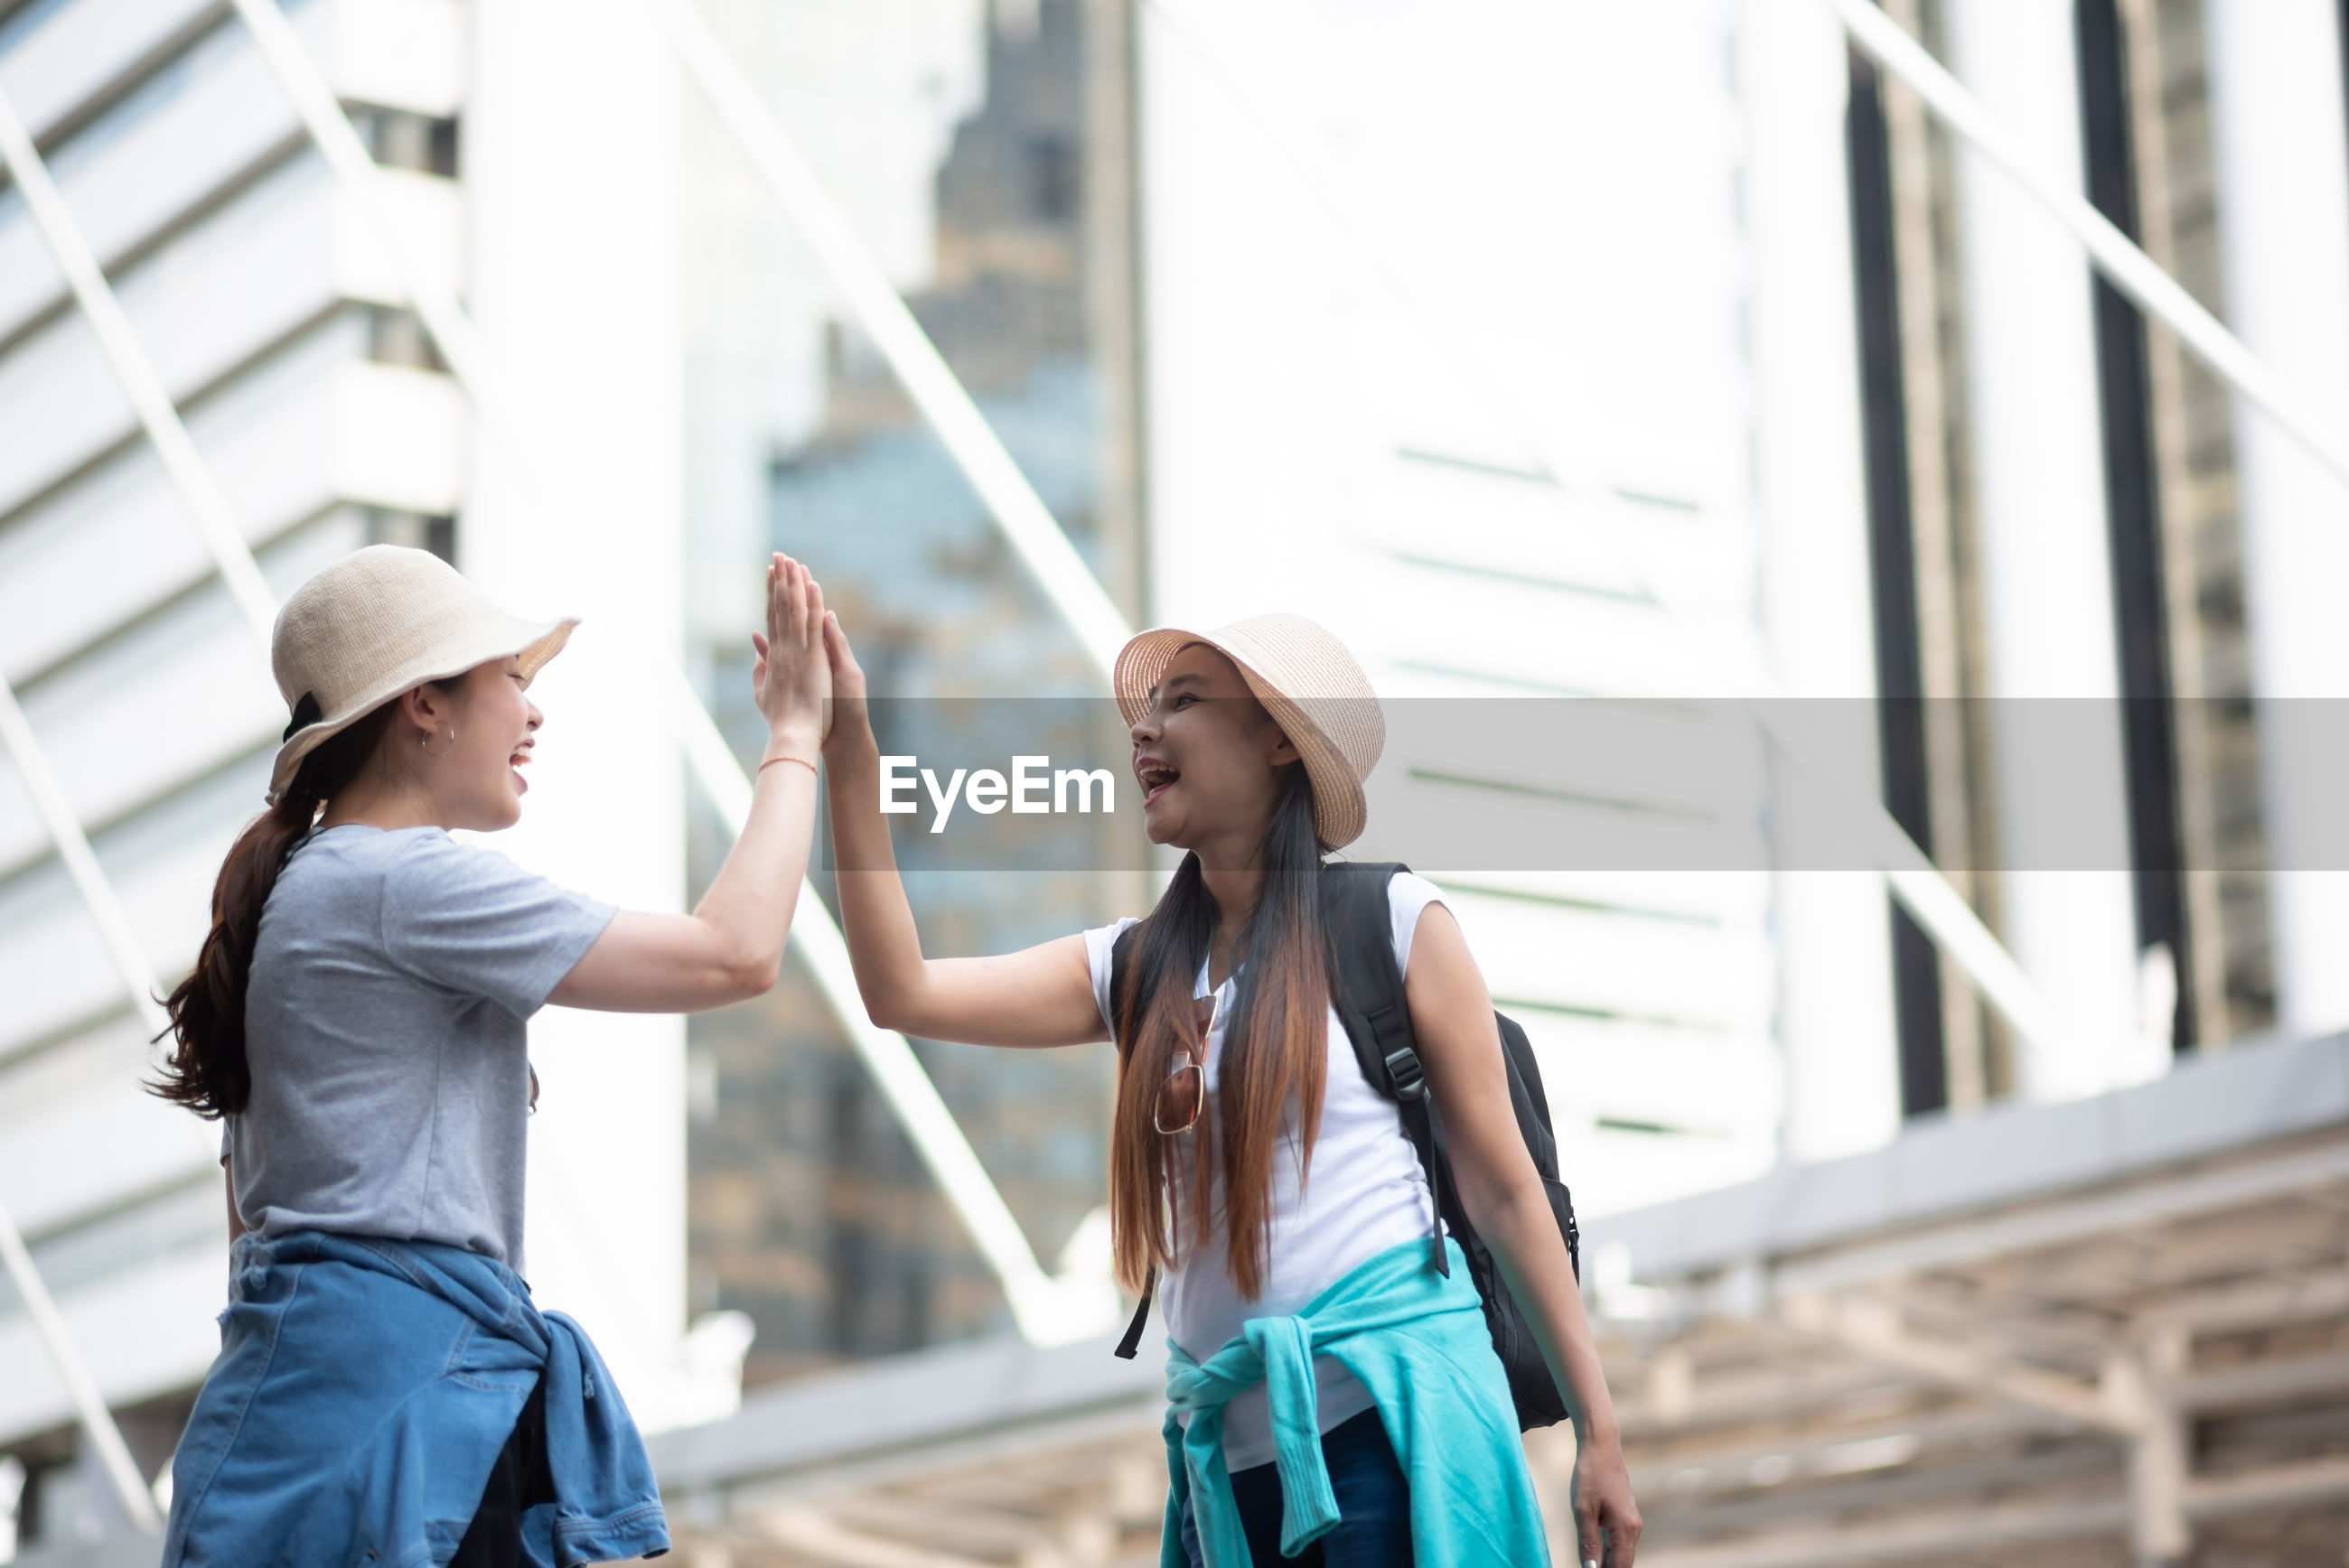 Tourists doing high five while standing in city